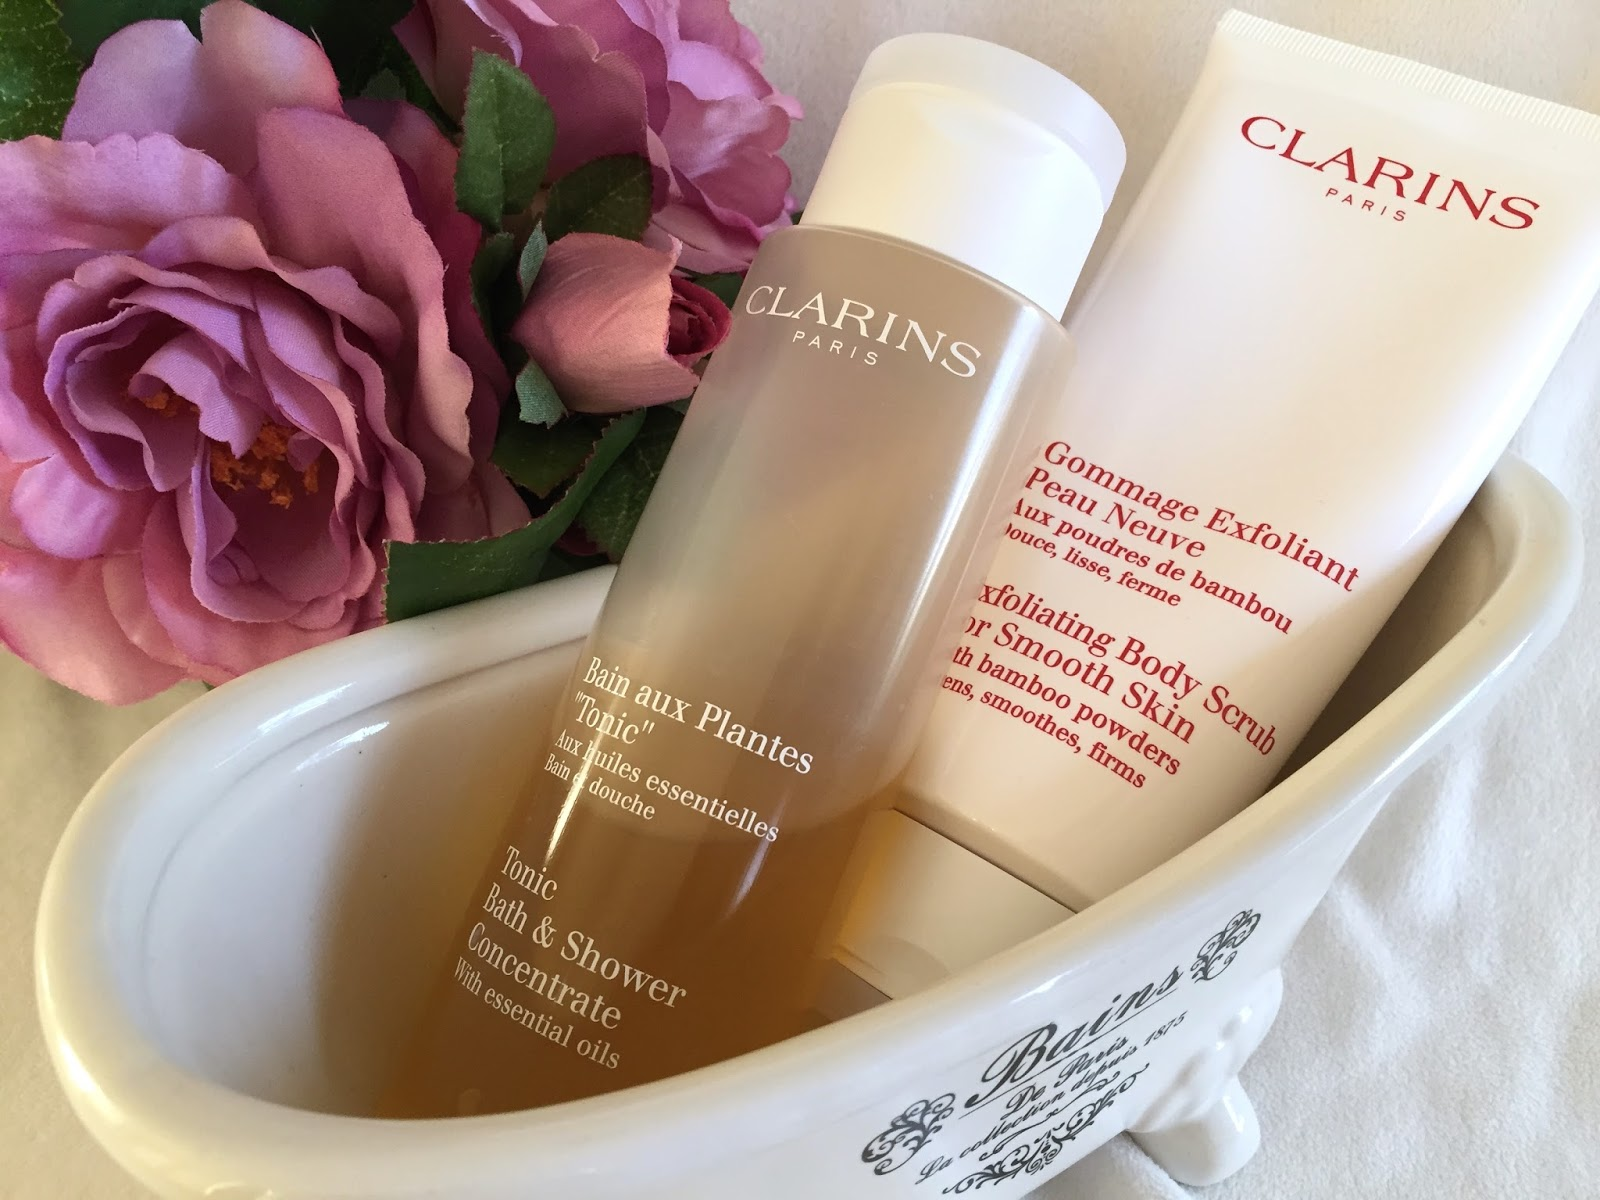 Good Clarins Tonic Bath And Shower Concentrate Part - 8: Clarins Tonic Bath U0026 Shower Concentrate RRP $38.00 AUD Clarins Exfoliating  Body Scrub RRP $45.00 AUD